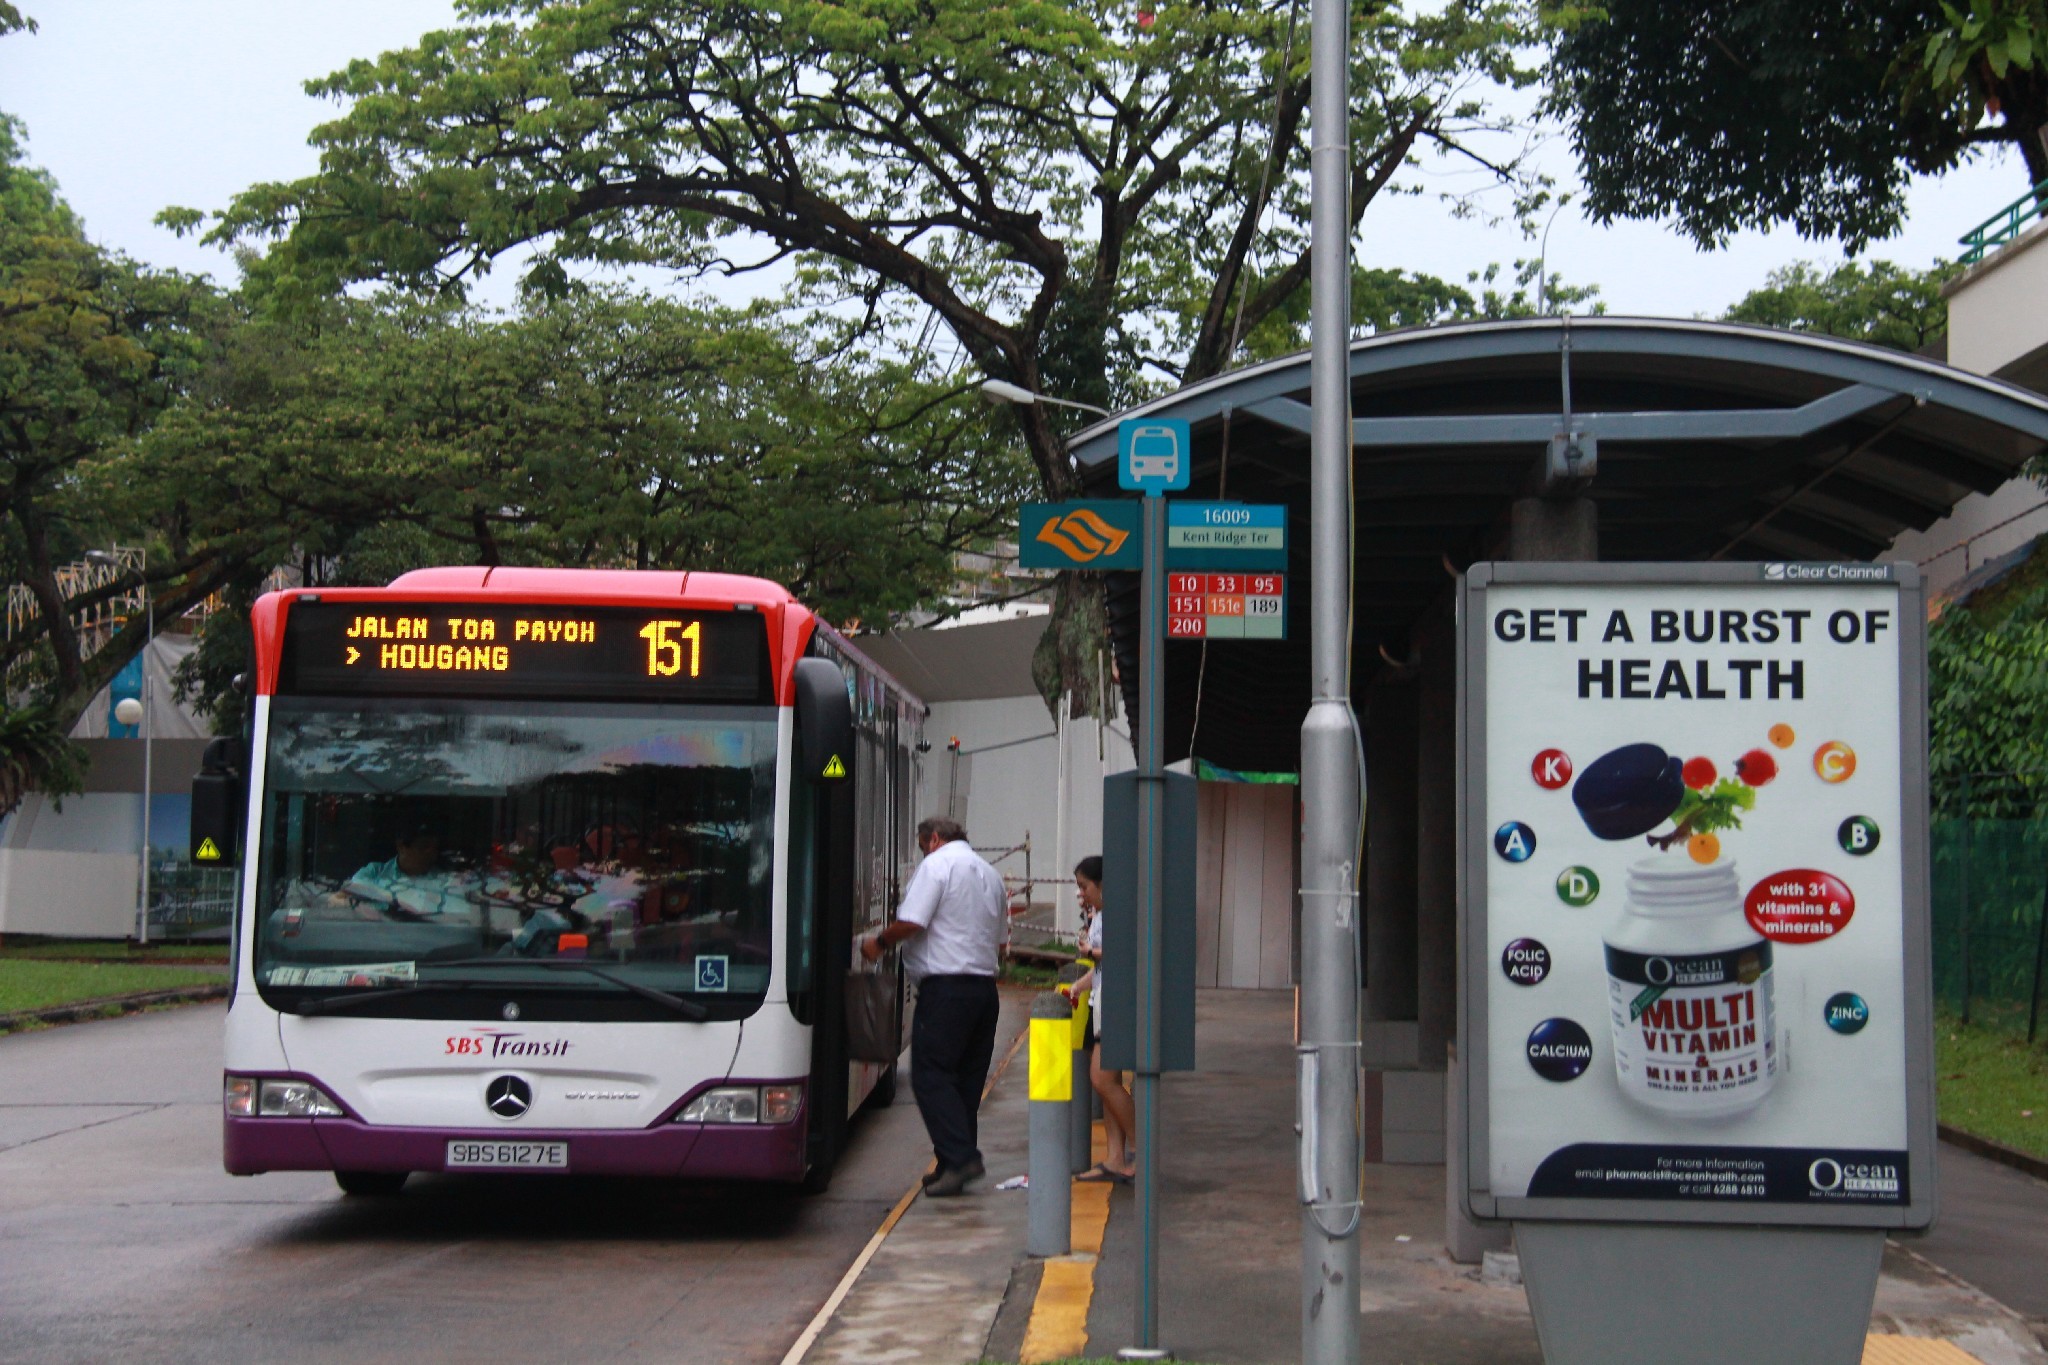 Service 151 picks up passengers at Kent Ridge Terminal